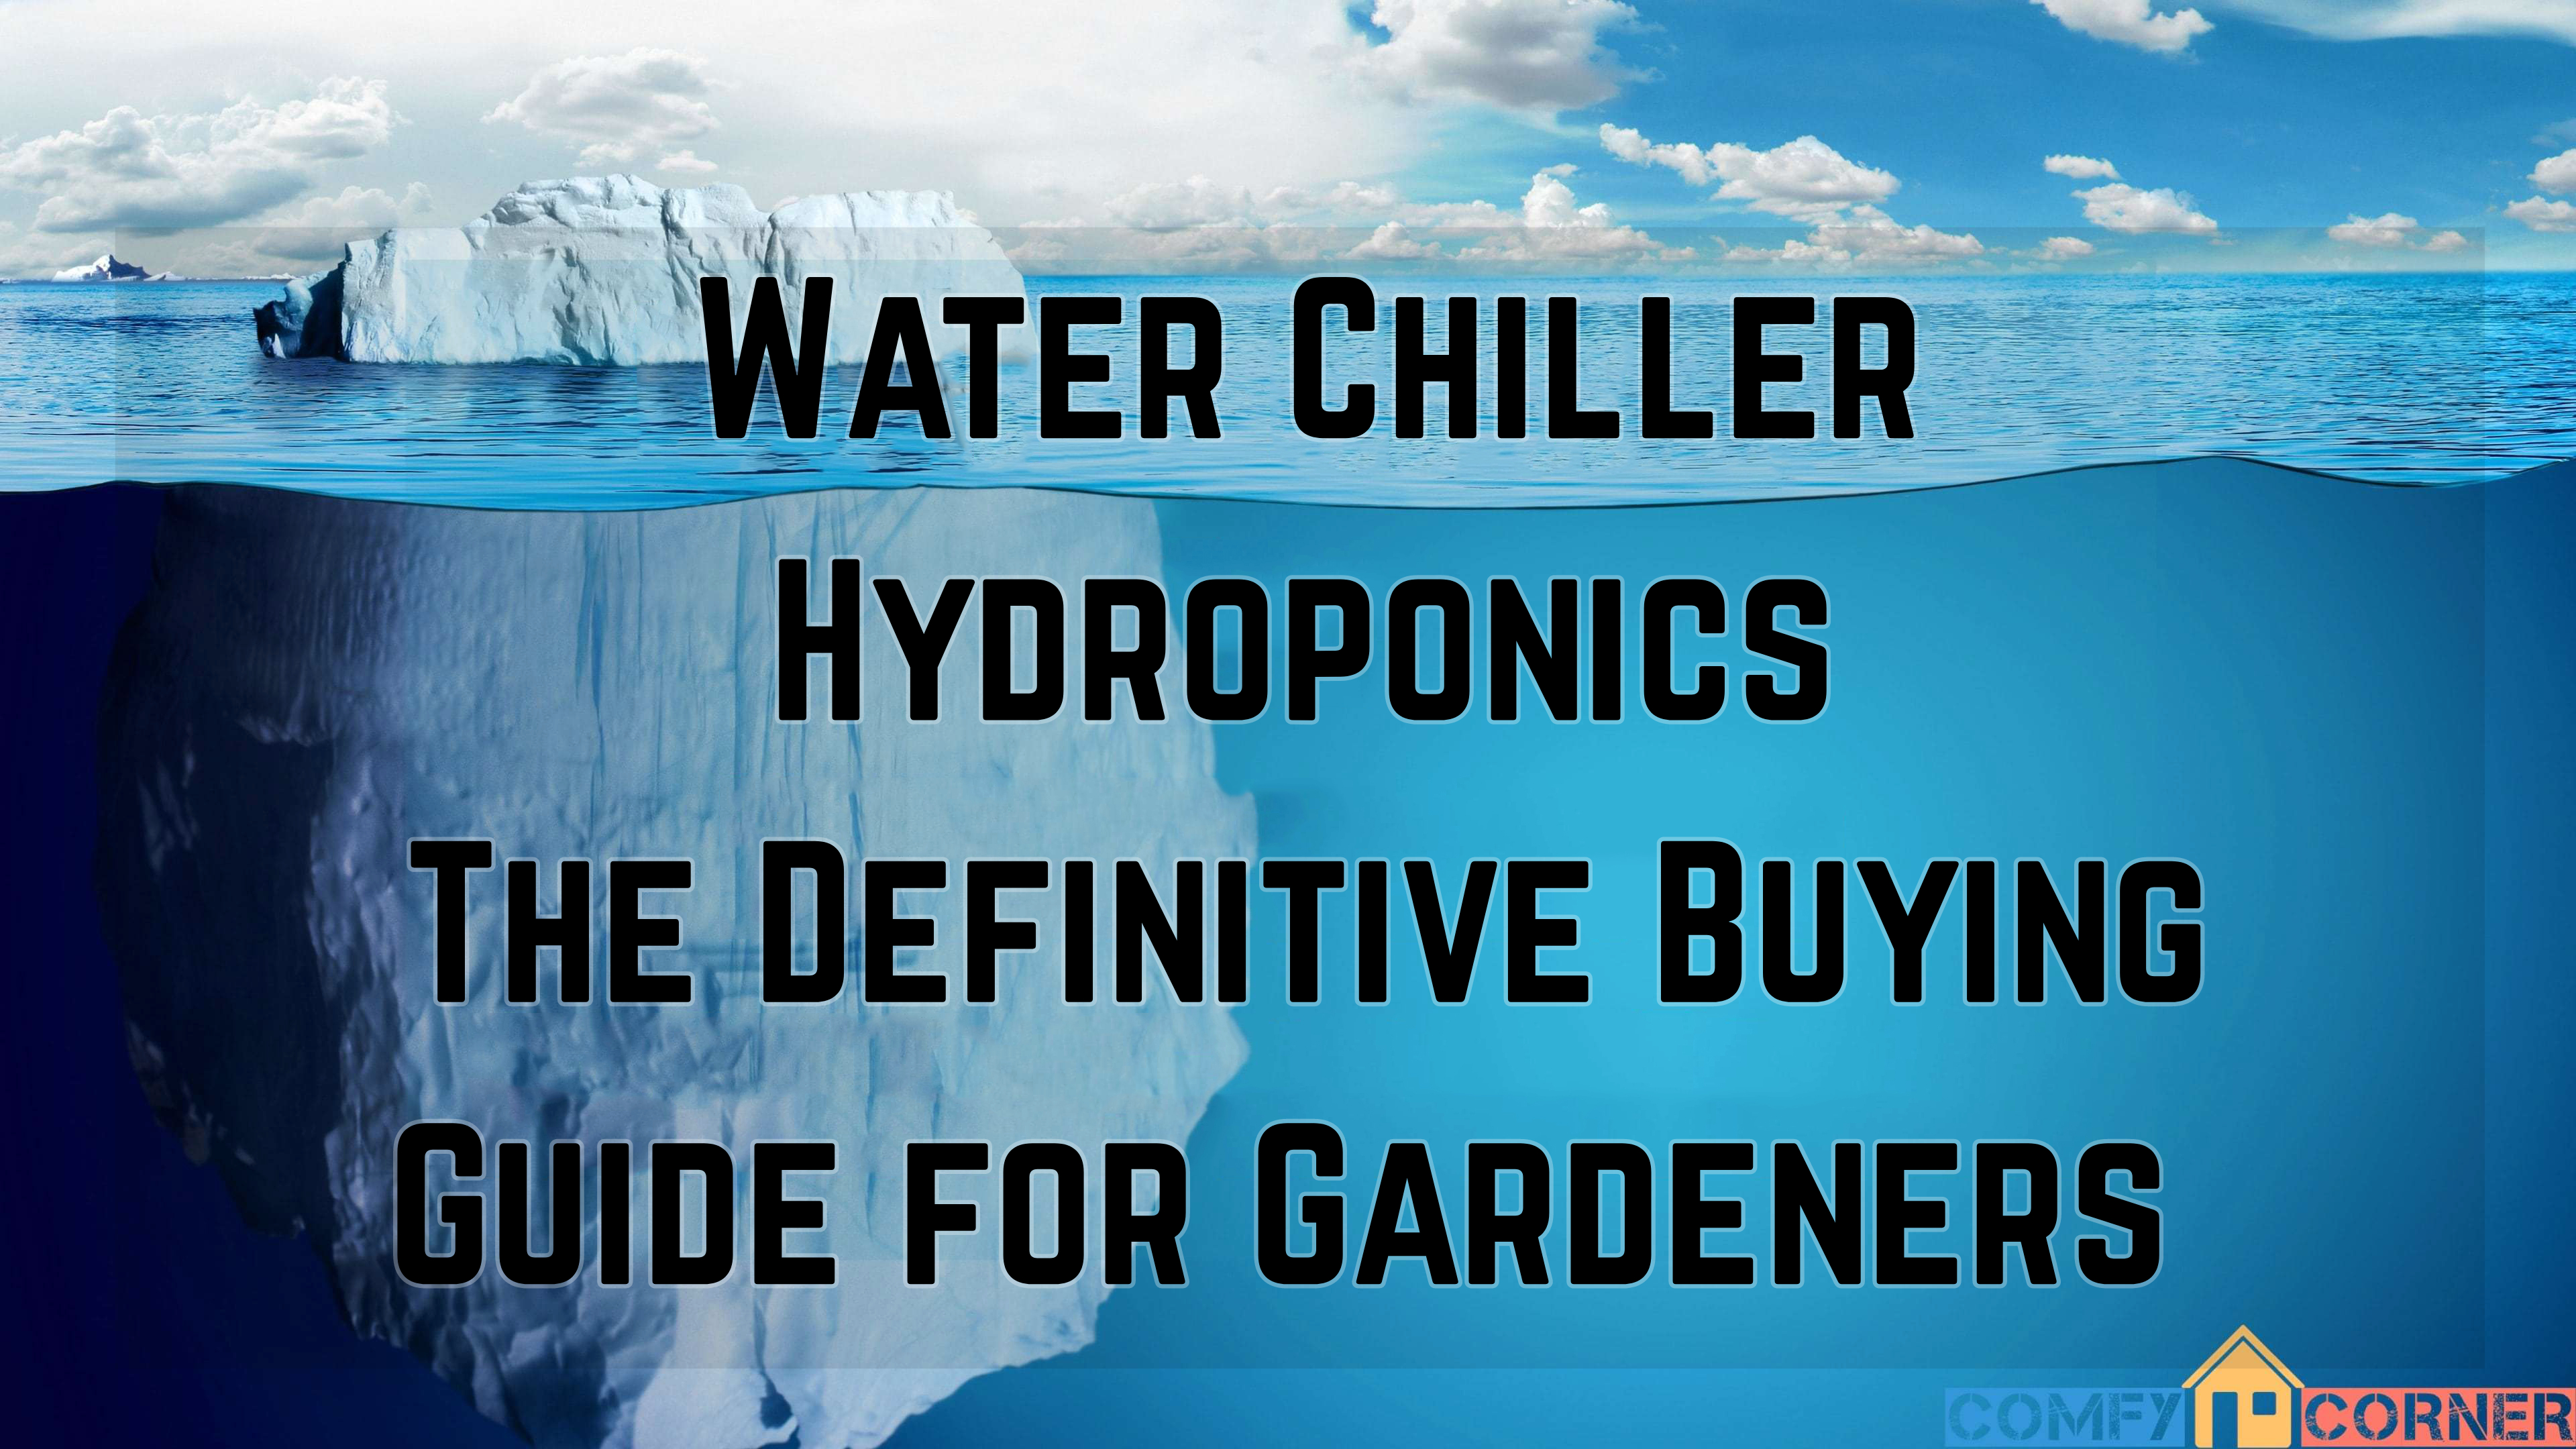 Water Chiller Hydroponics: The Definitive Buying Guide for